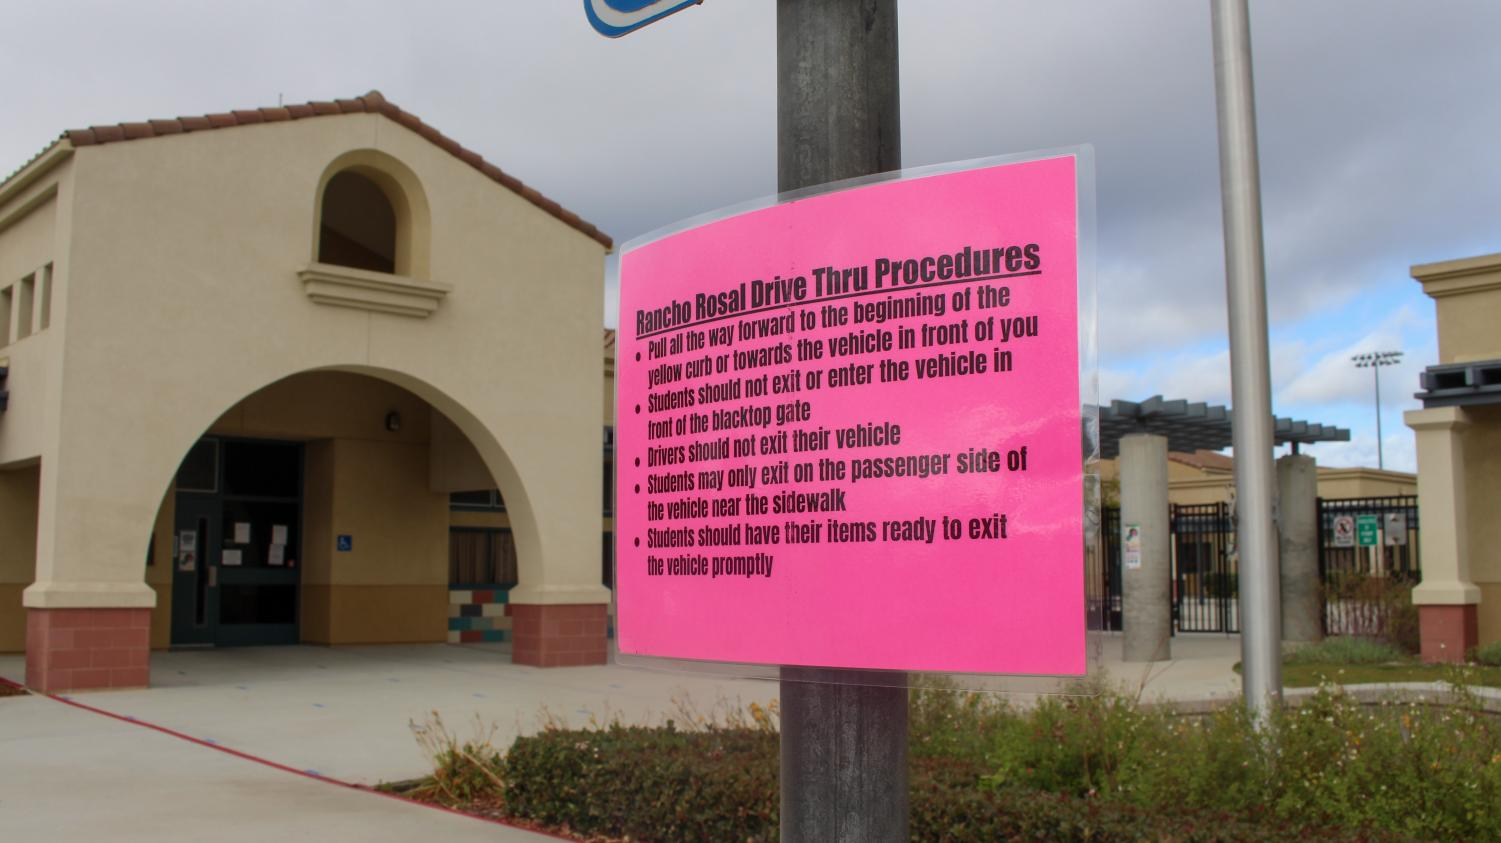 Rancho Rosal Elementary School in Camarillo, Calif. displays procedure for student pick-up and drop-off on Friday, Dec. 11, due to COVID-19 concerns in California. Photo credit: Leslie Mendez